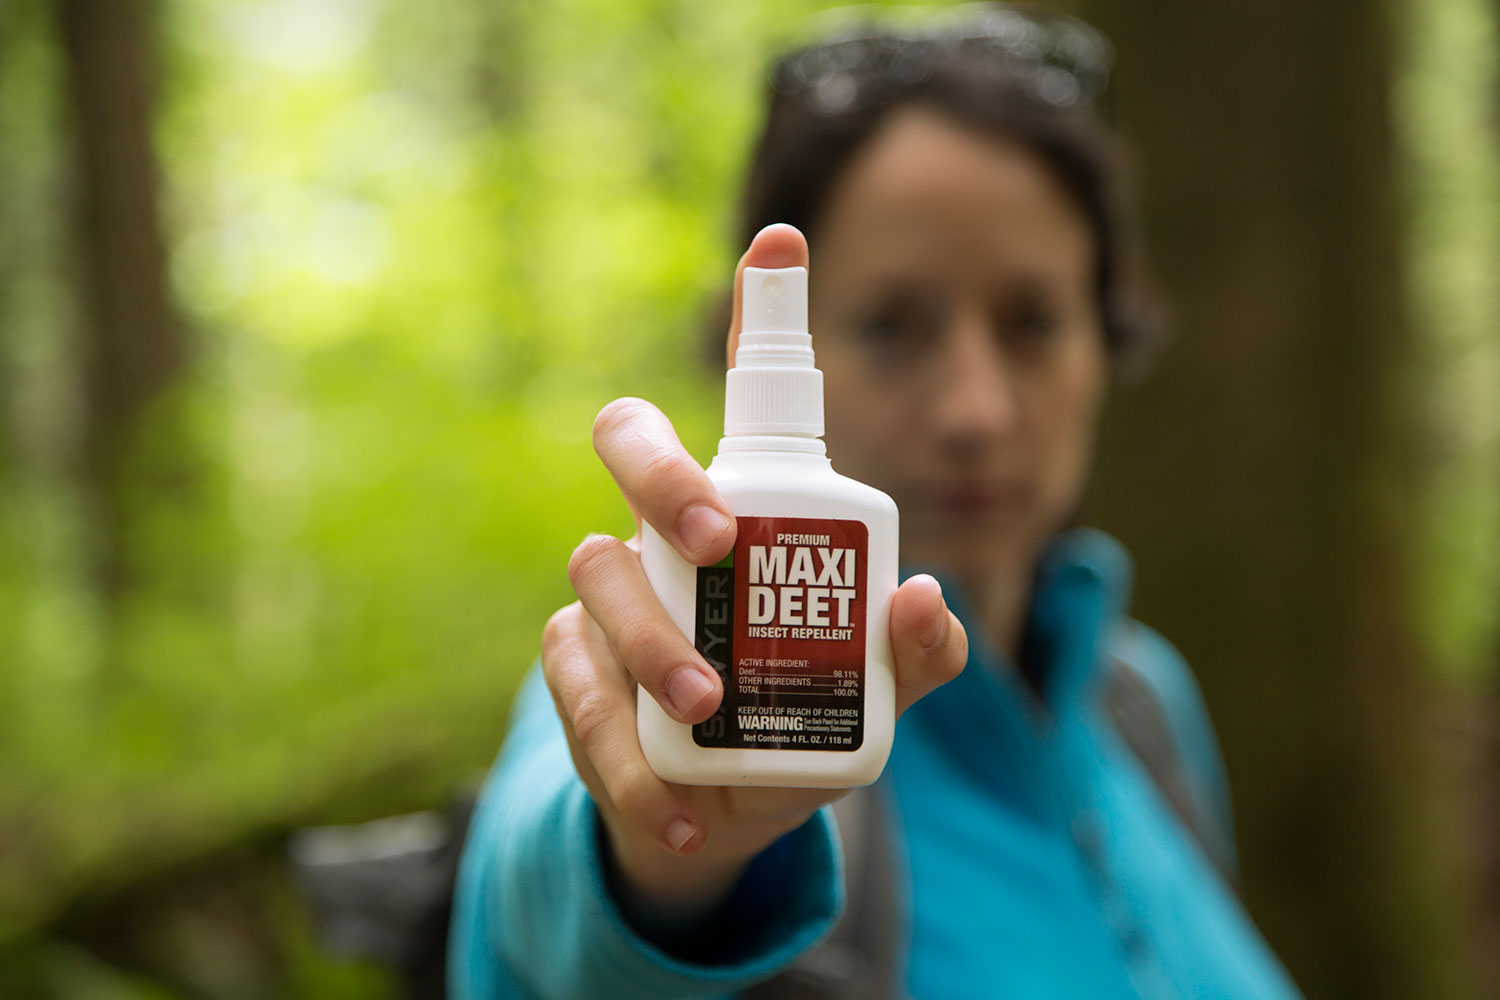 A Woman Holding Sawyer MAXI DEET Insect Repellent Spray Towards the Camera in the Woods